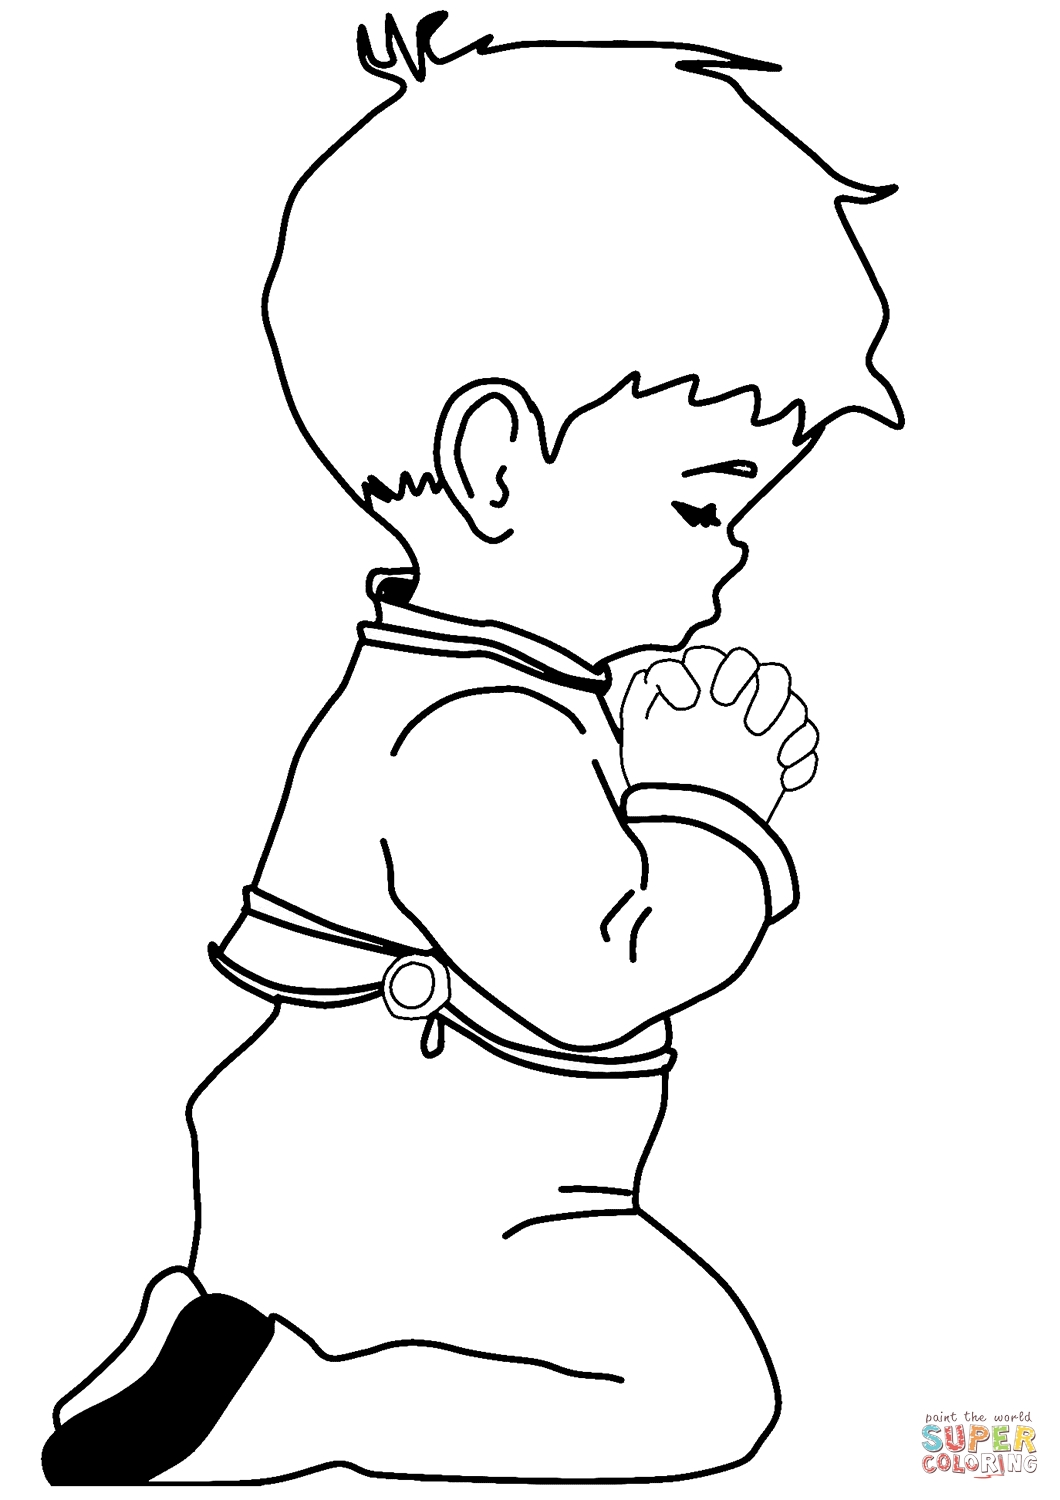 person coloring page - nino orando 0